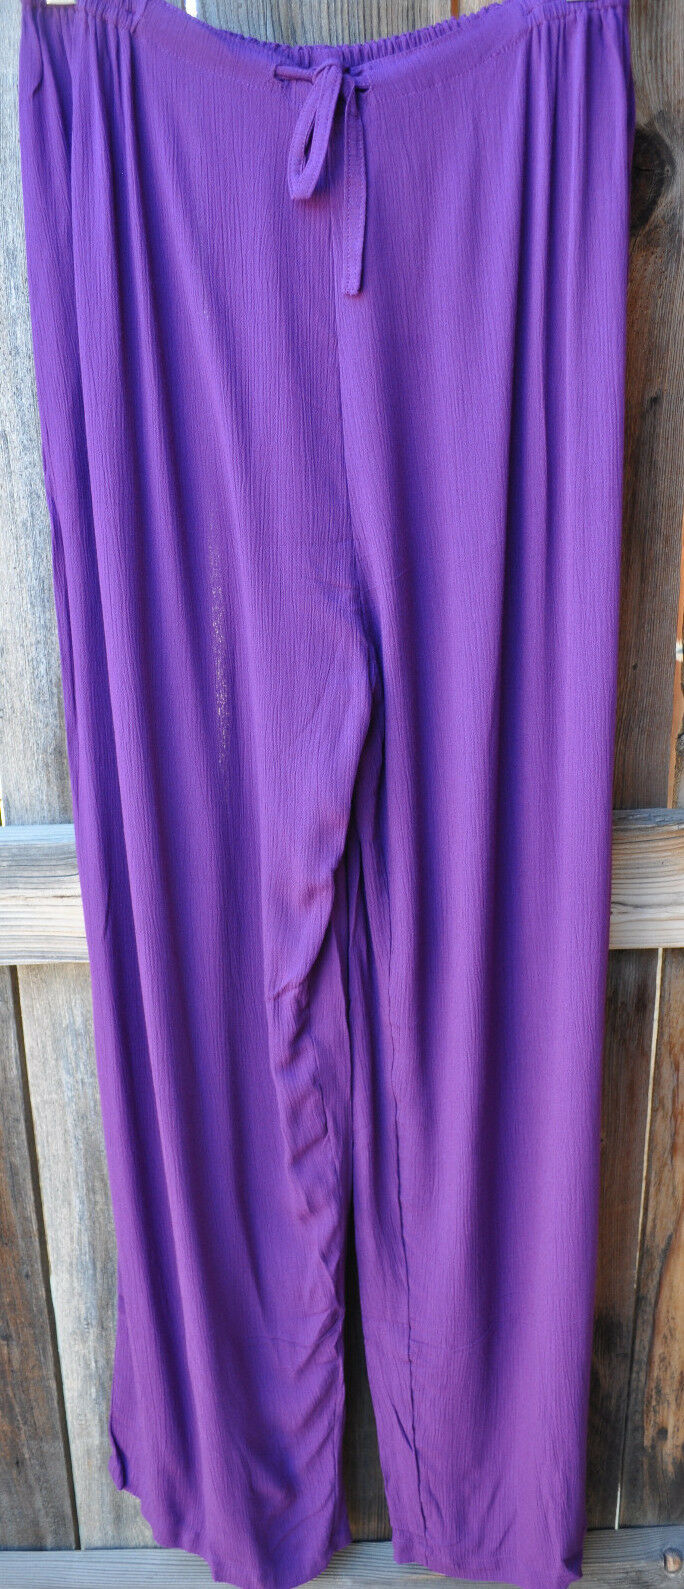 ART TO WEAR 4 PANT IN SOLID IRIS PURPLE BY MISSION CANYON,ONE SIZE, NWT ,